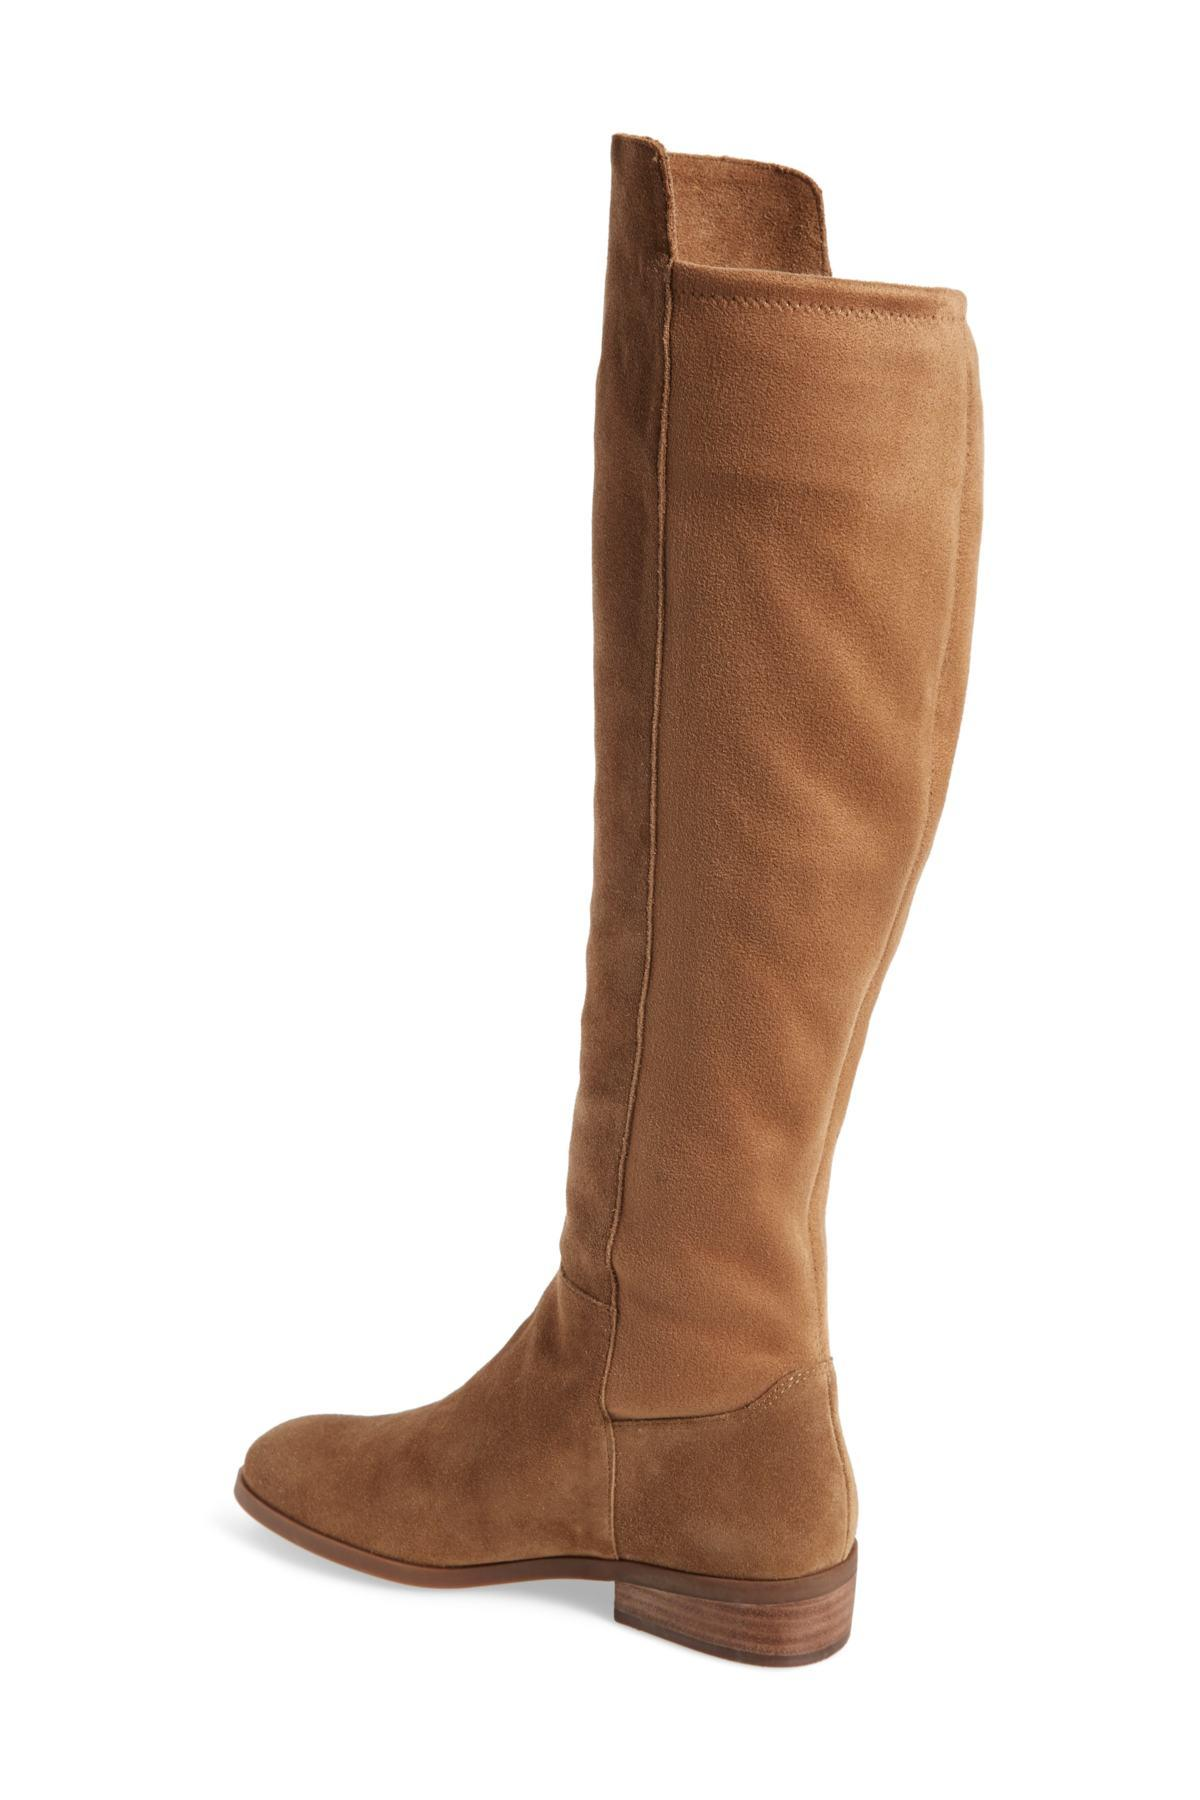 00235c851e61 Sole Society - Brown Calypso Over The Knee Boot (women) - Lyst. View  fullscreen